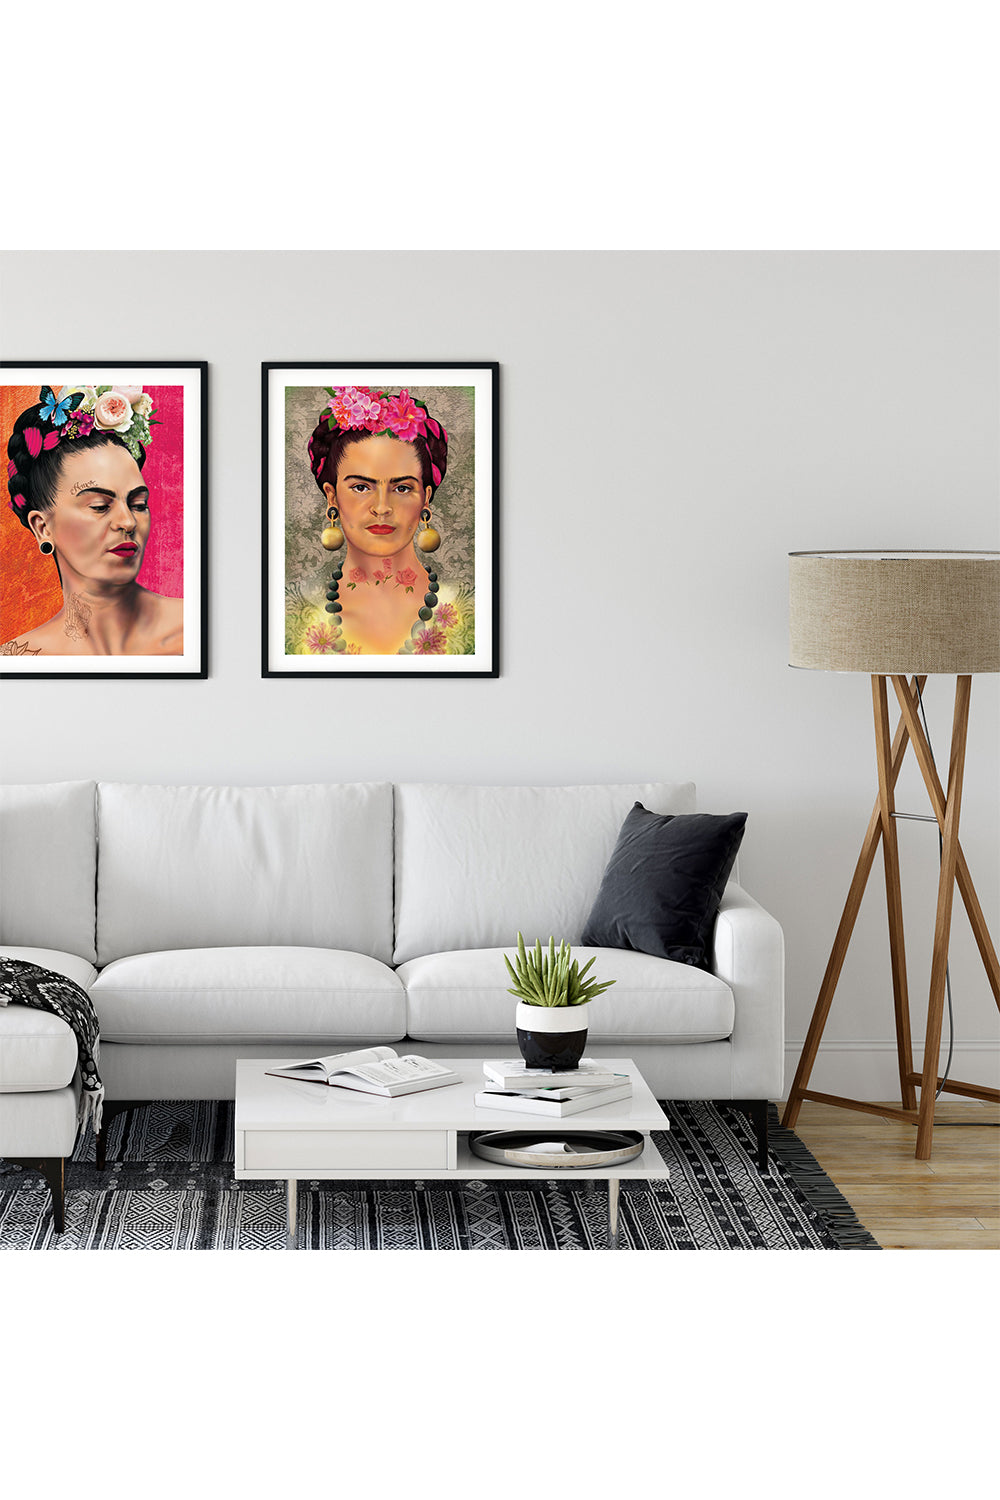 Flowers of Frida Art